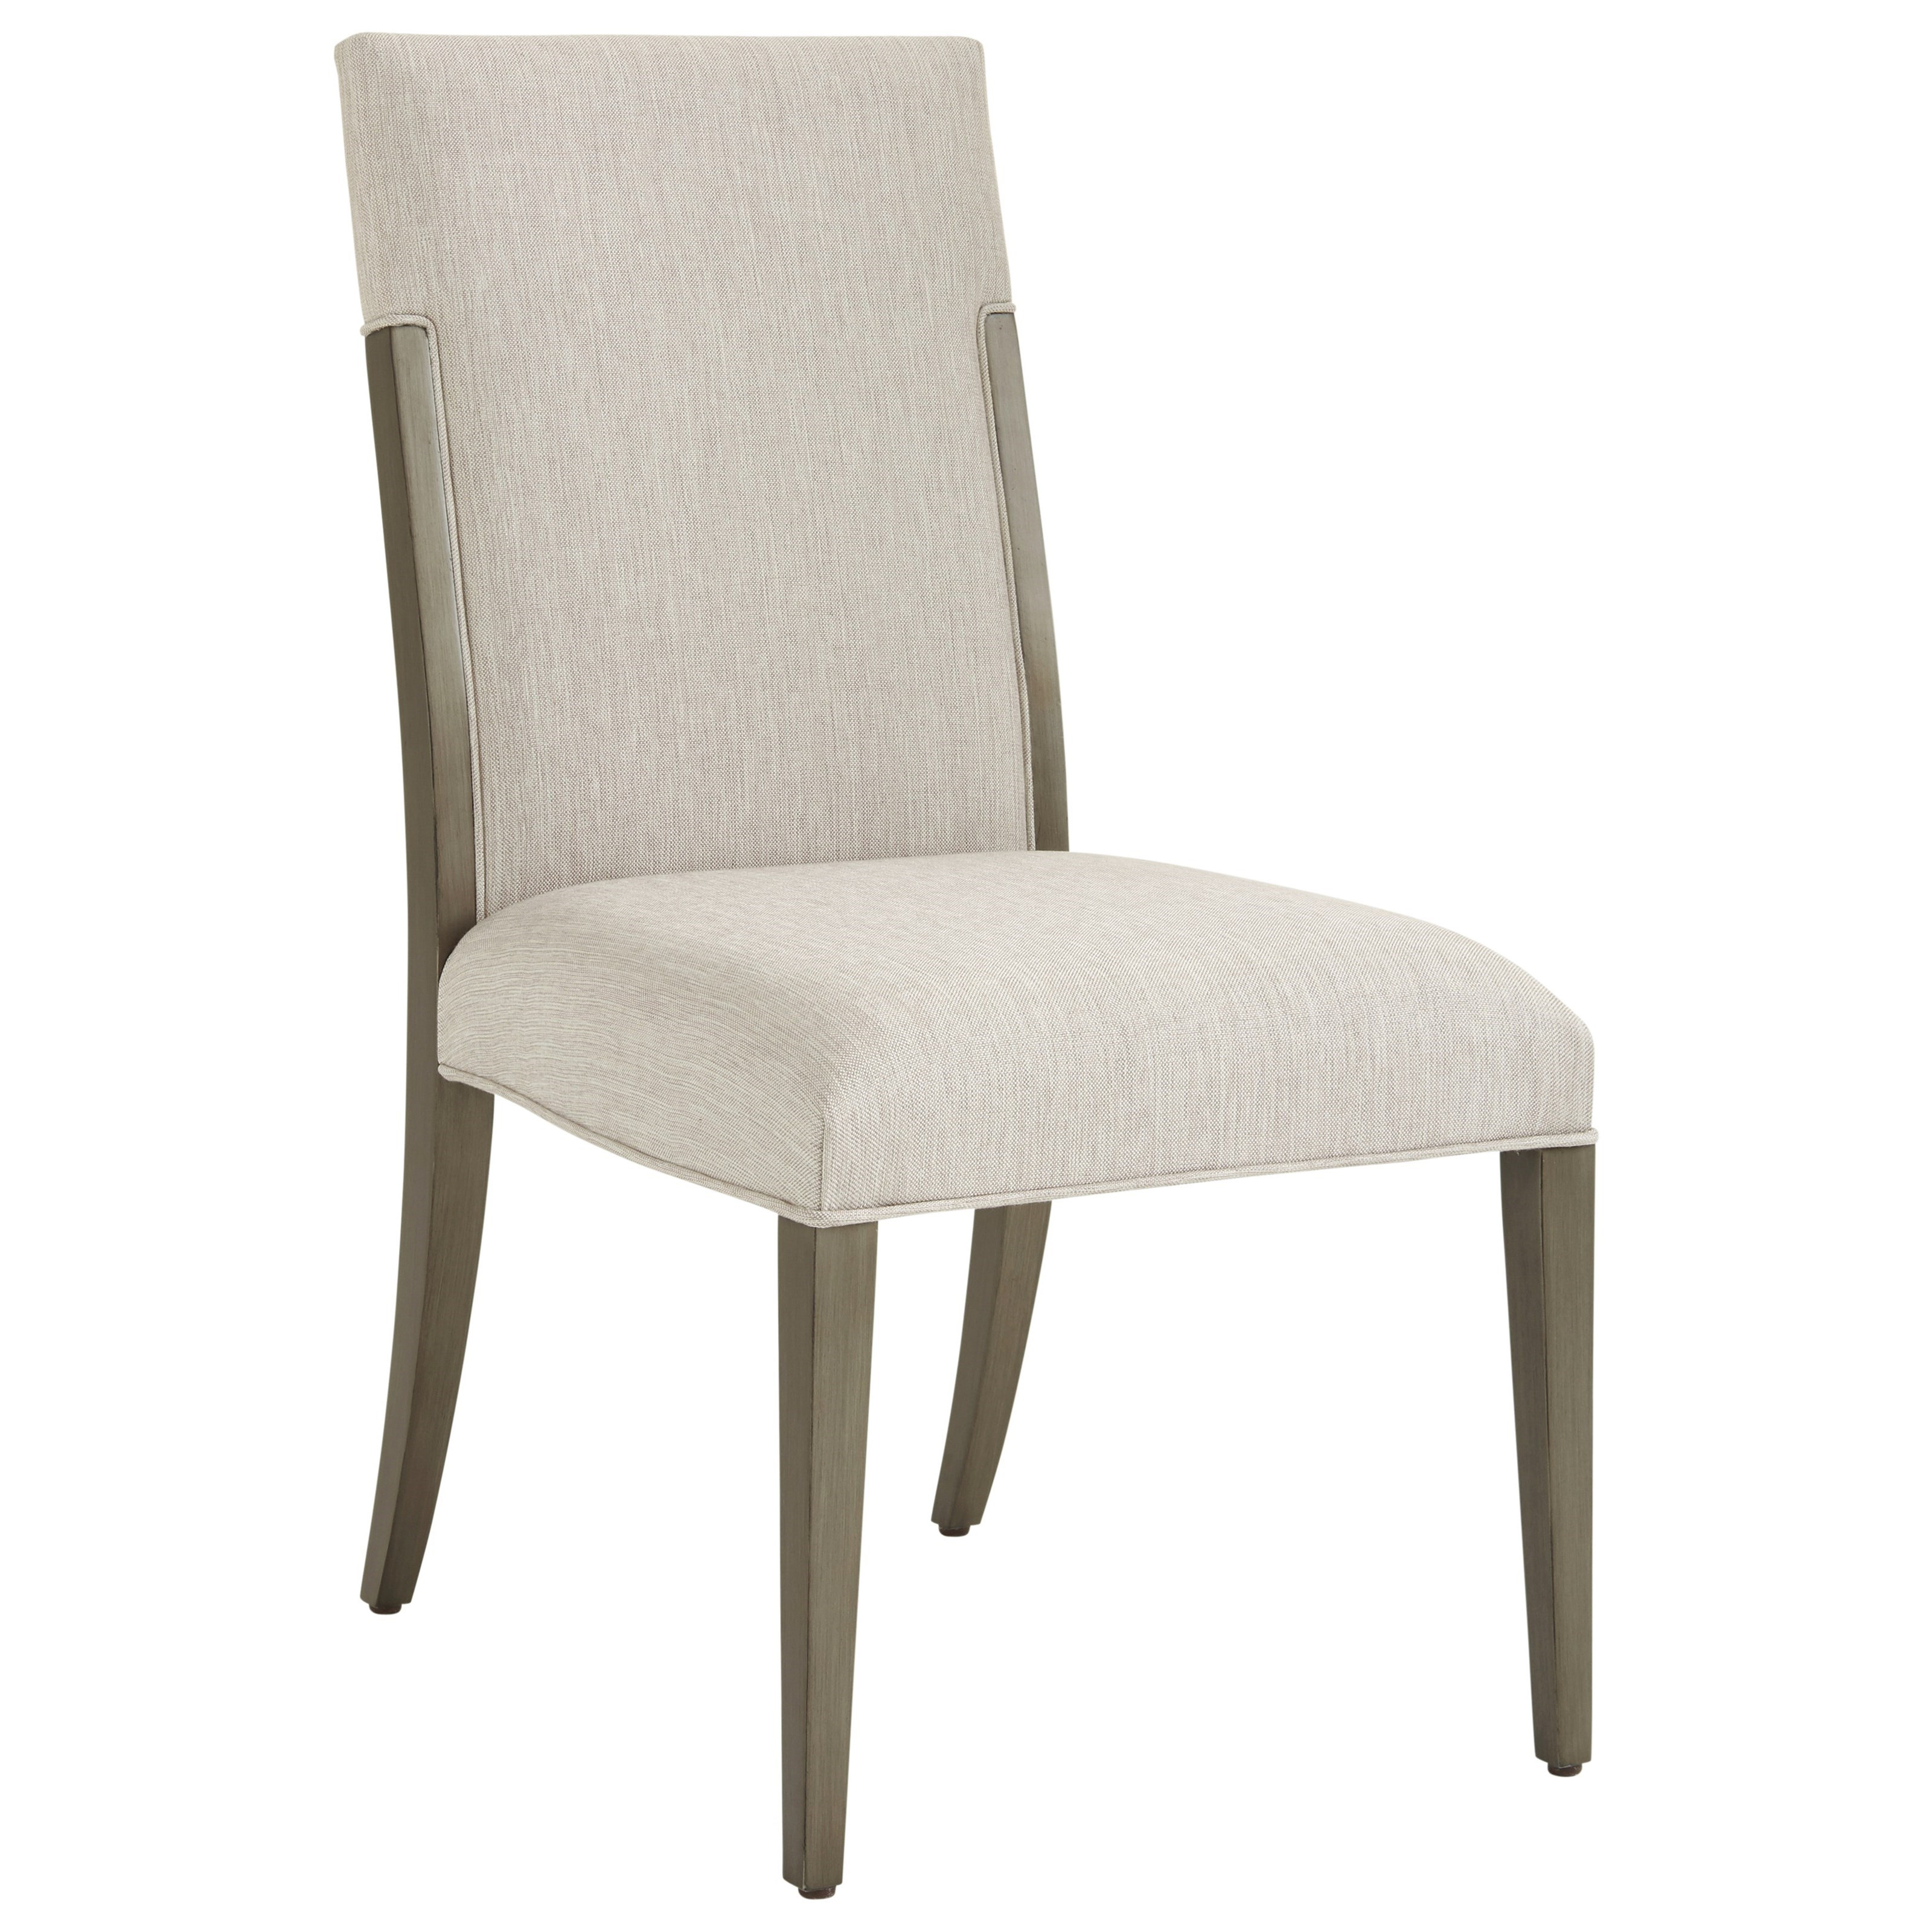 Ariana Saverne Upholstered Side Chair (married) by Lexington at Fisher Home Furnishings